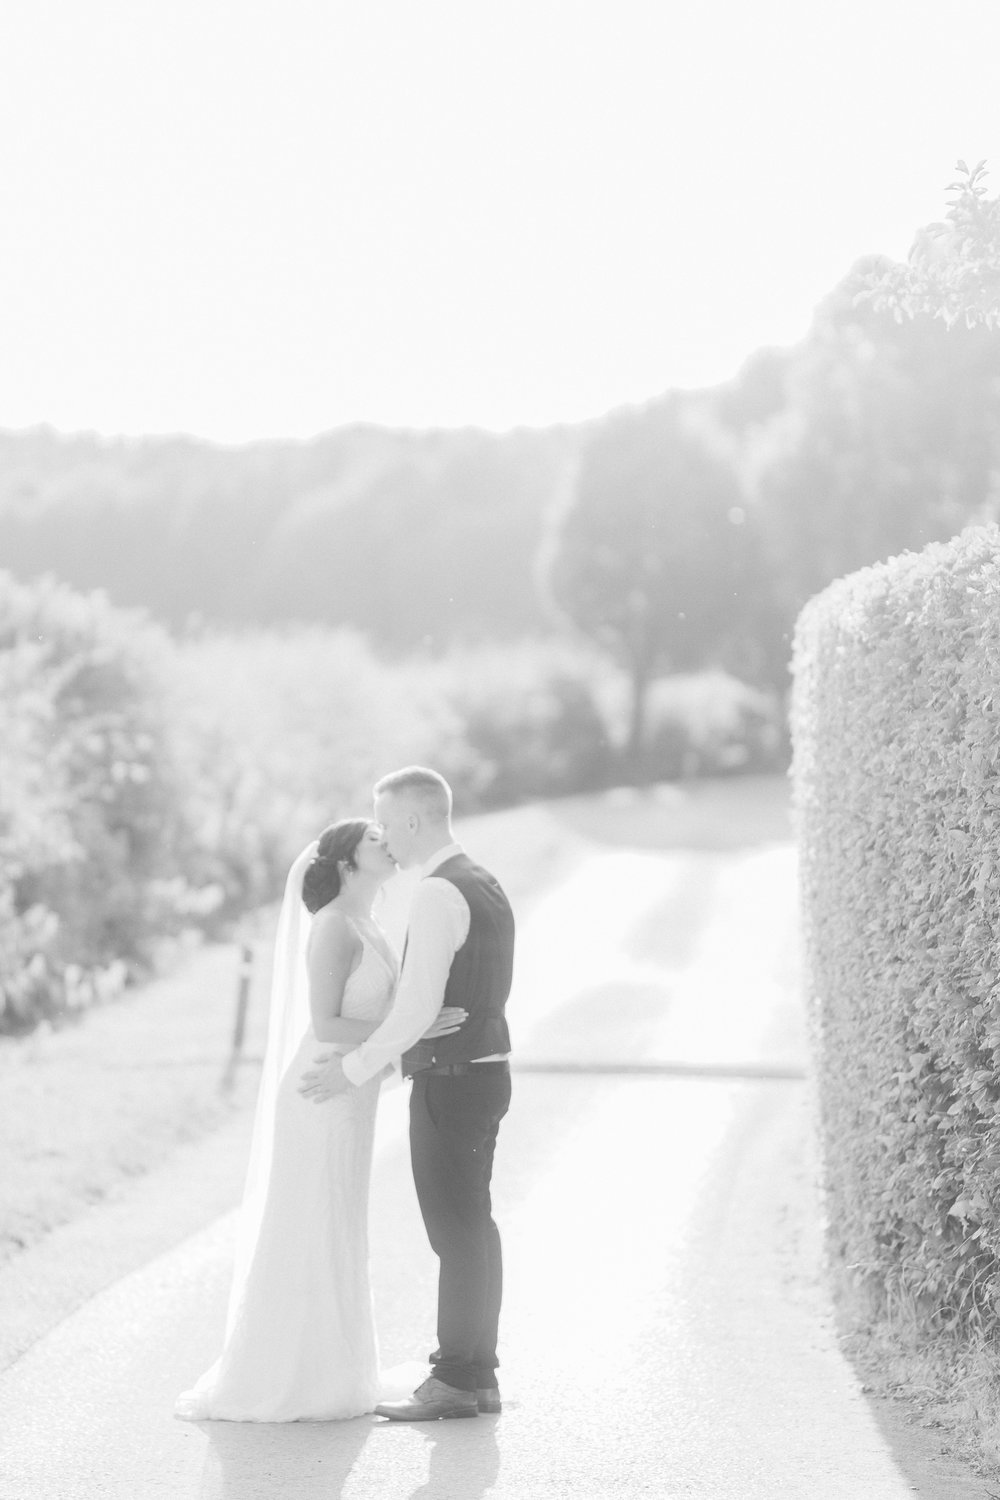 Oxfordshire-wedding-photographer-79.jpg